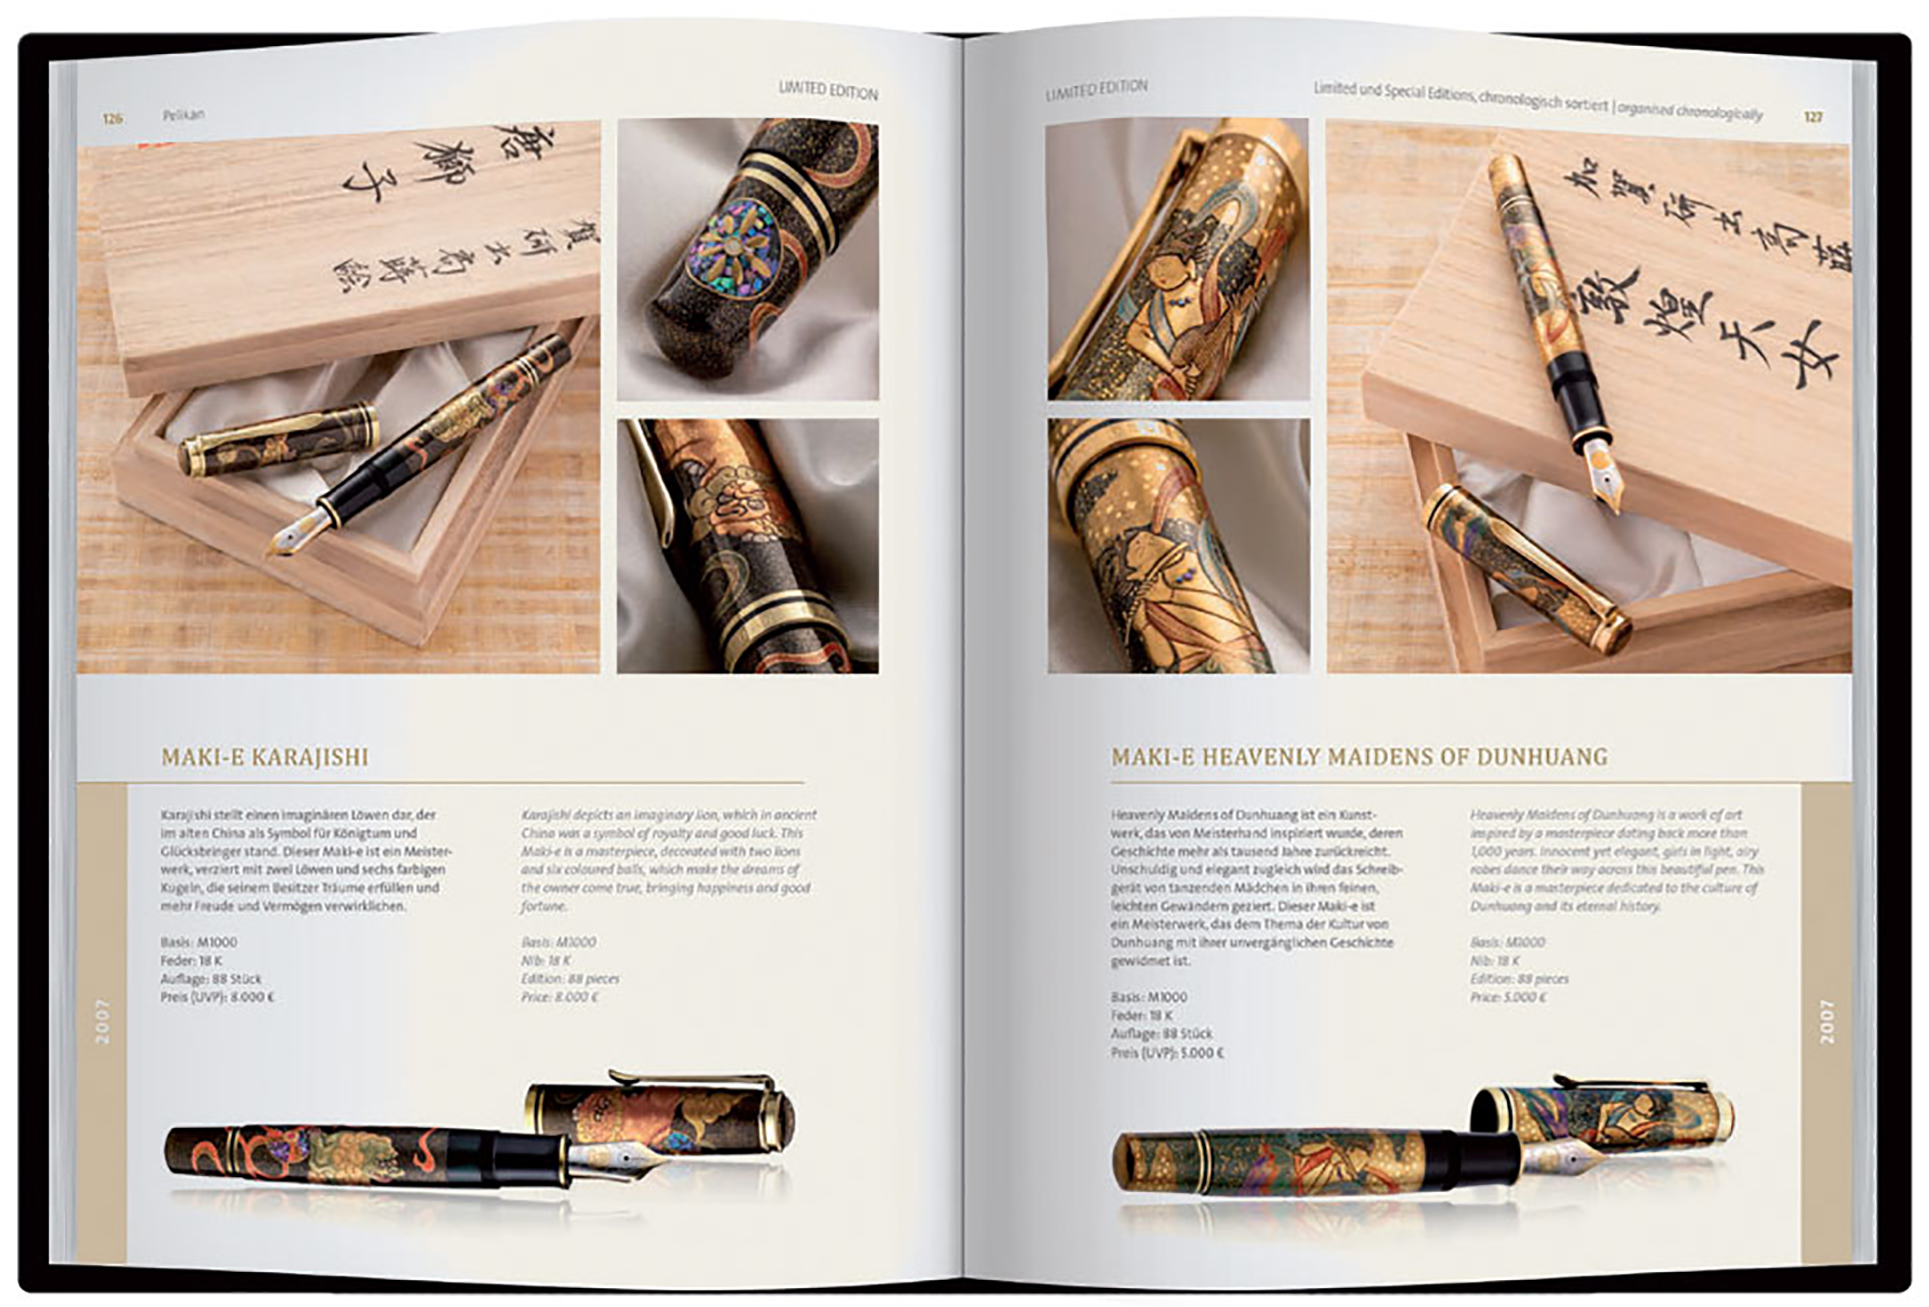 Pelikan Limited & Special Editions: Fine Writing Instruments 1993-2020